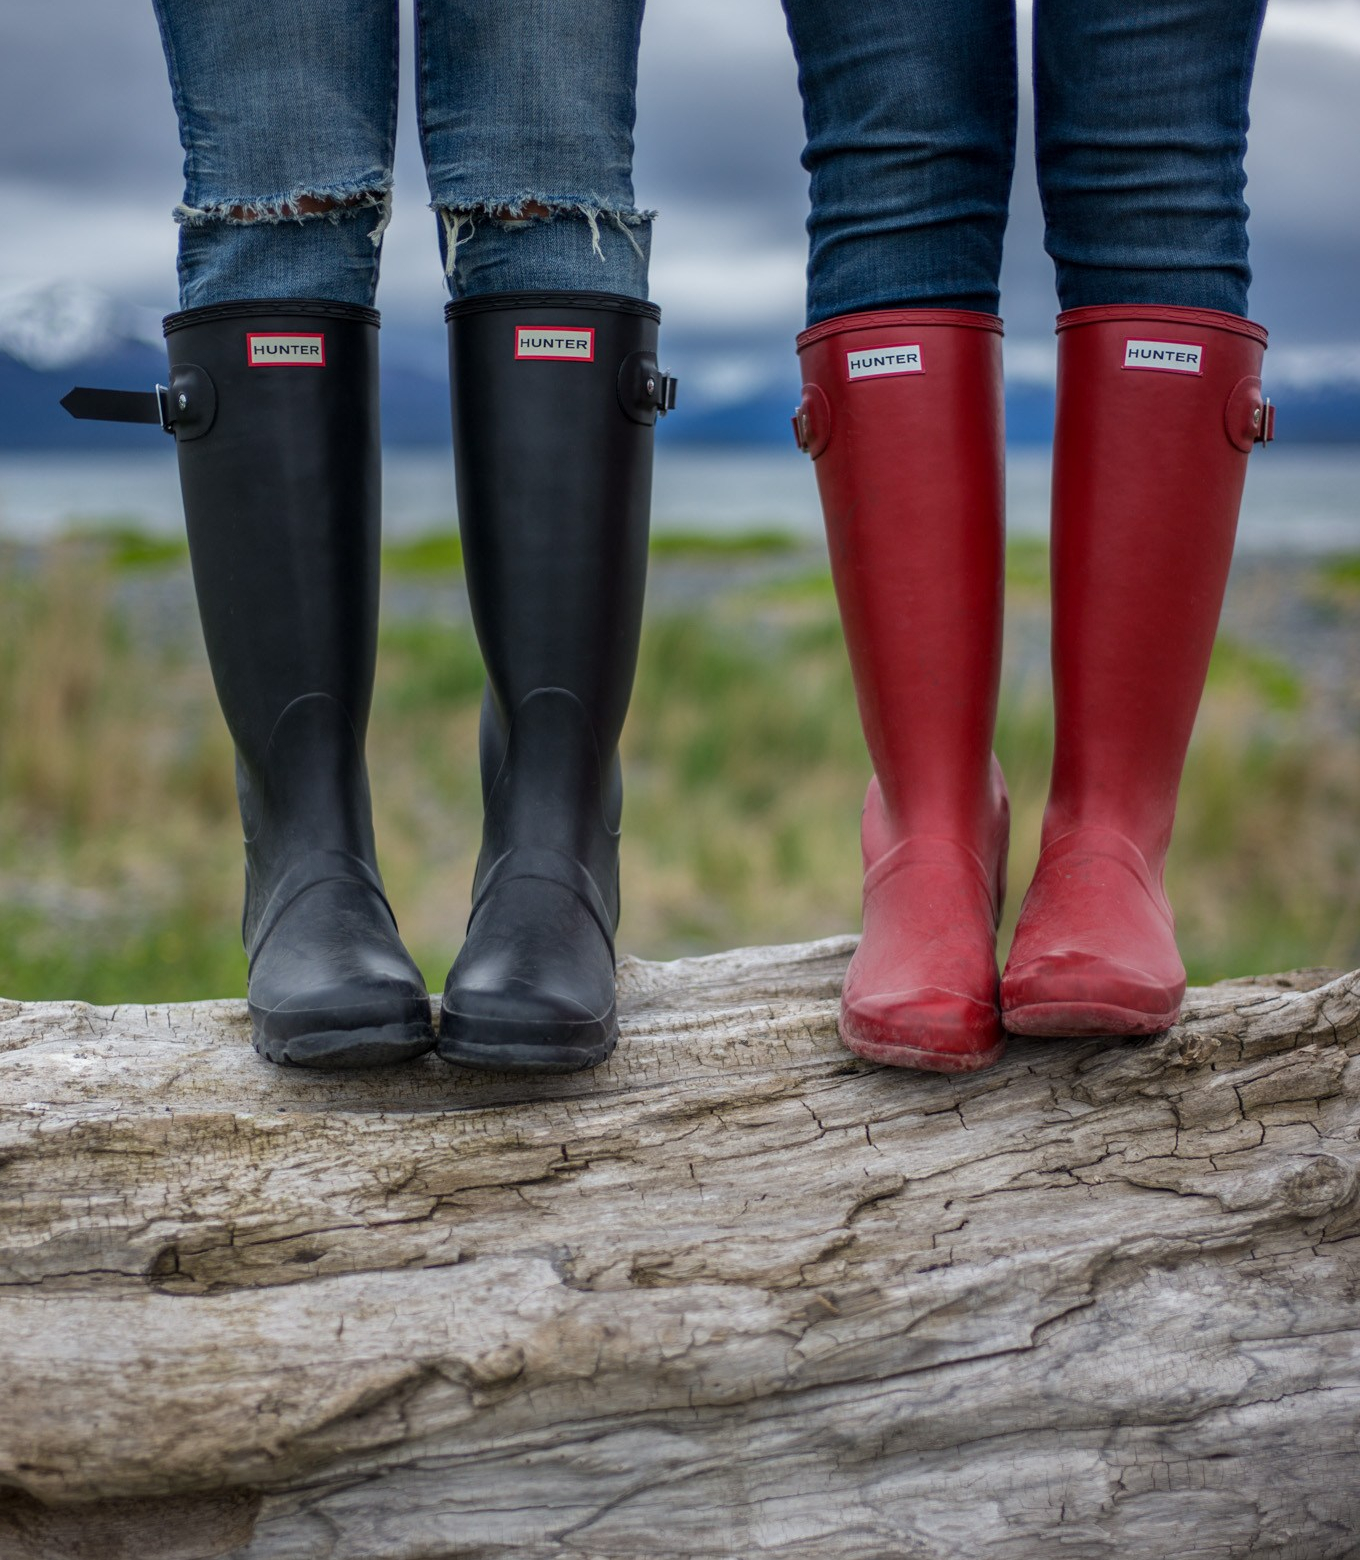 Two gals in Hunter boots on a huge log in the great outdoors.